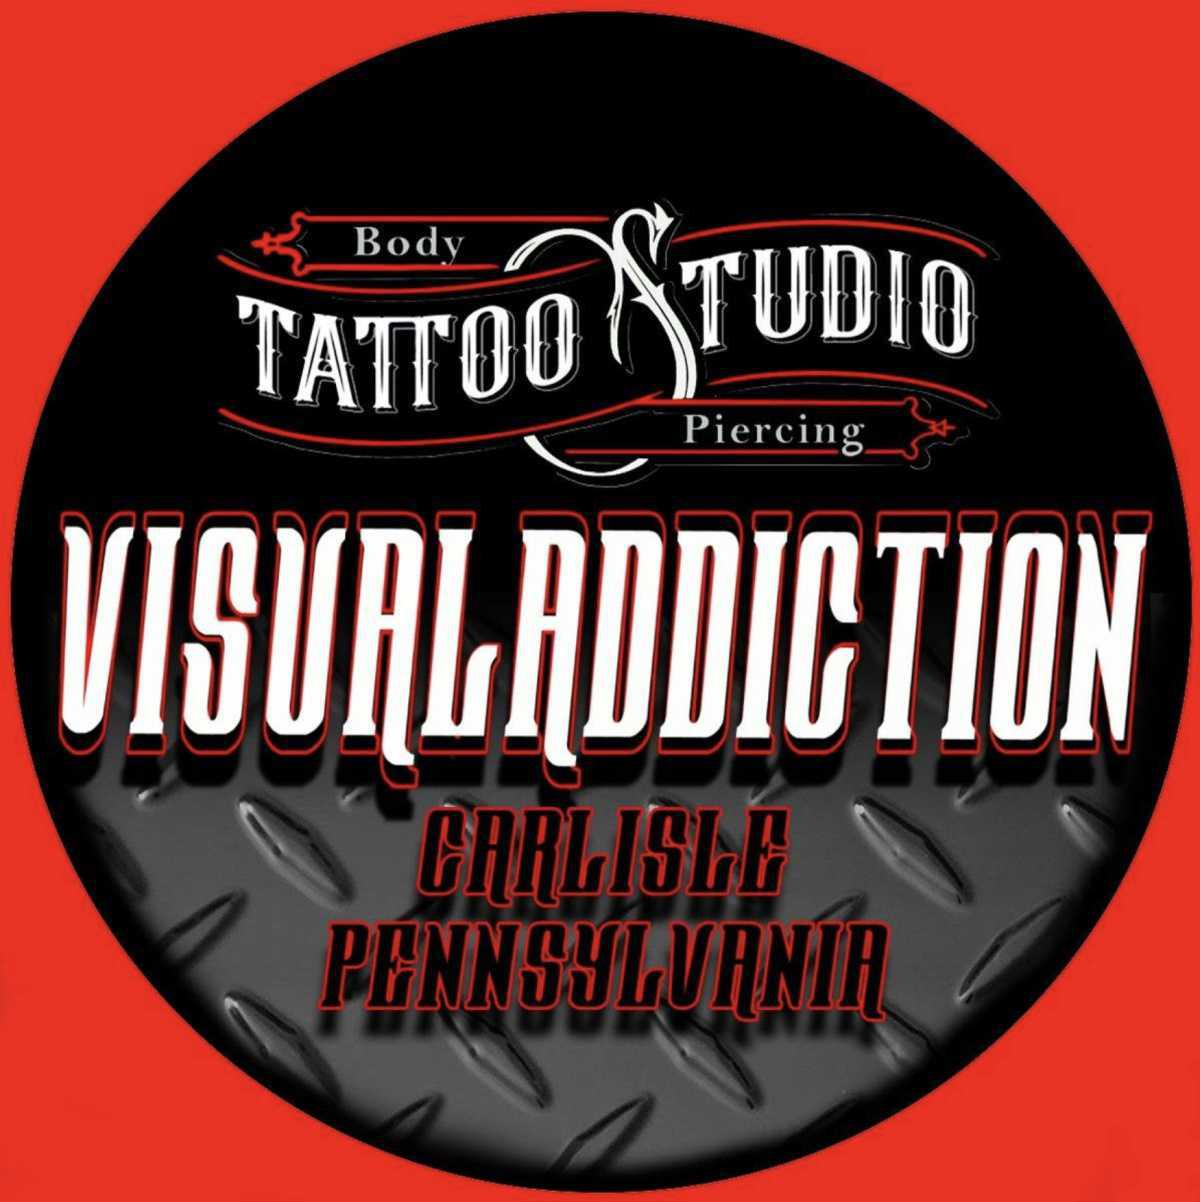 Visual Addiction Tattoo Parlor & Body Piercing